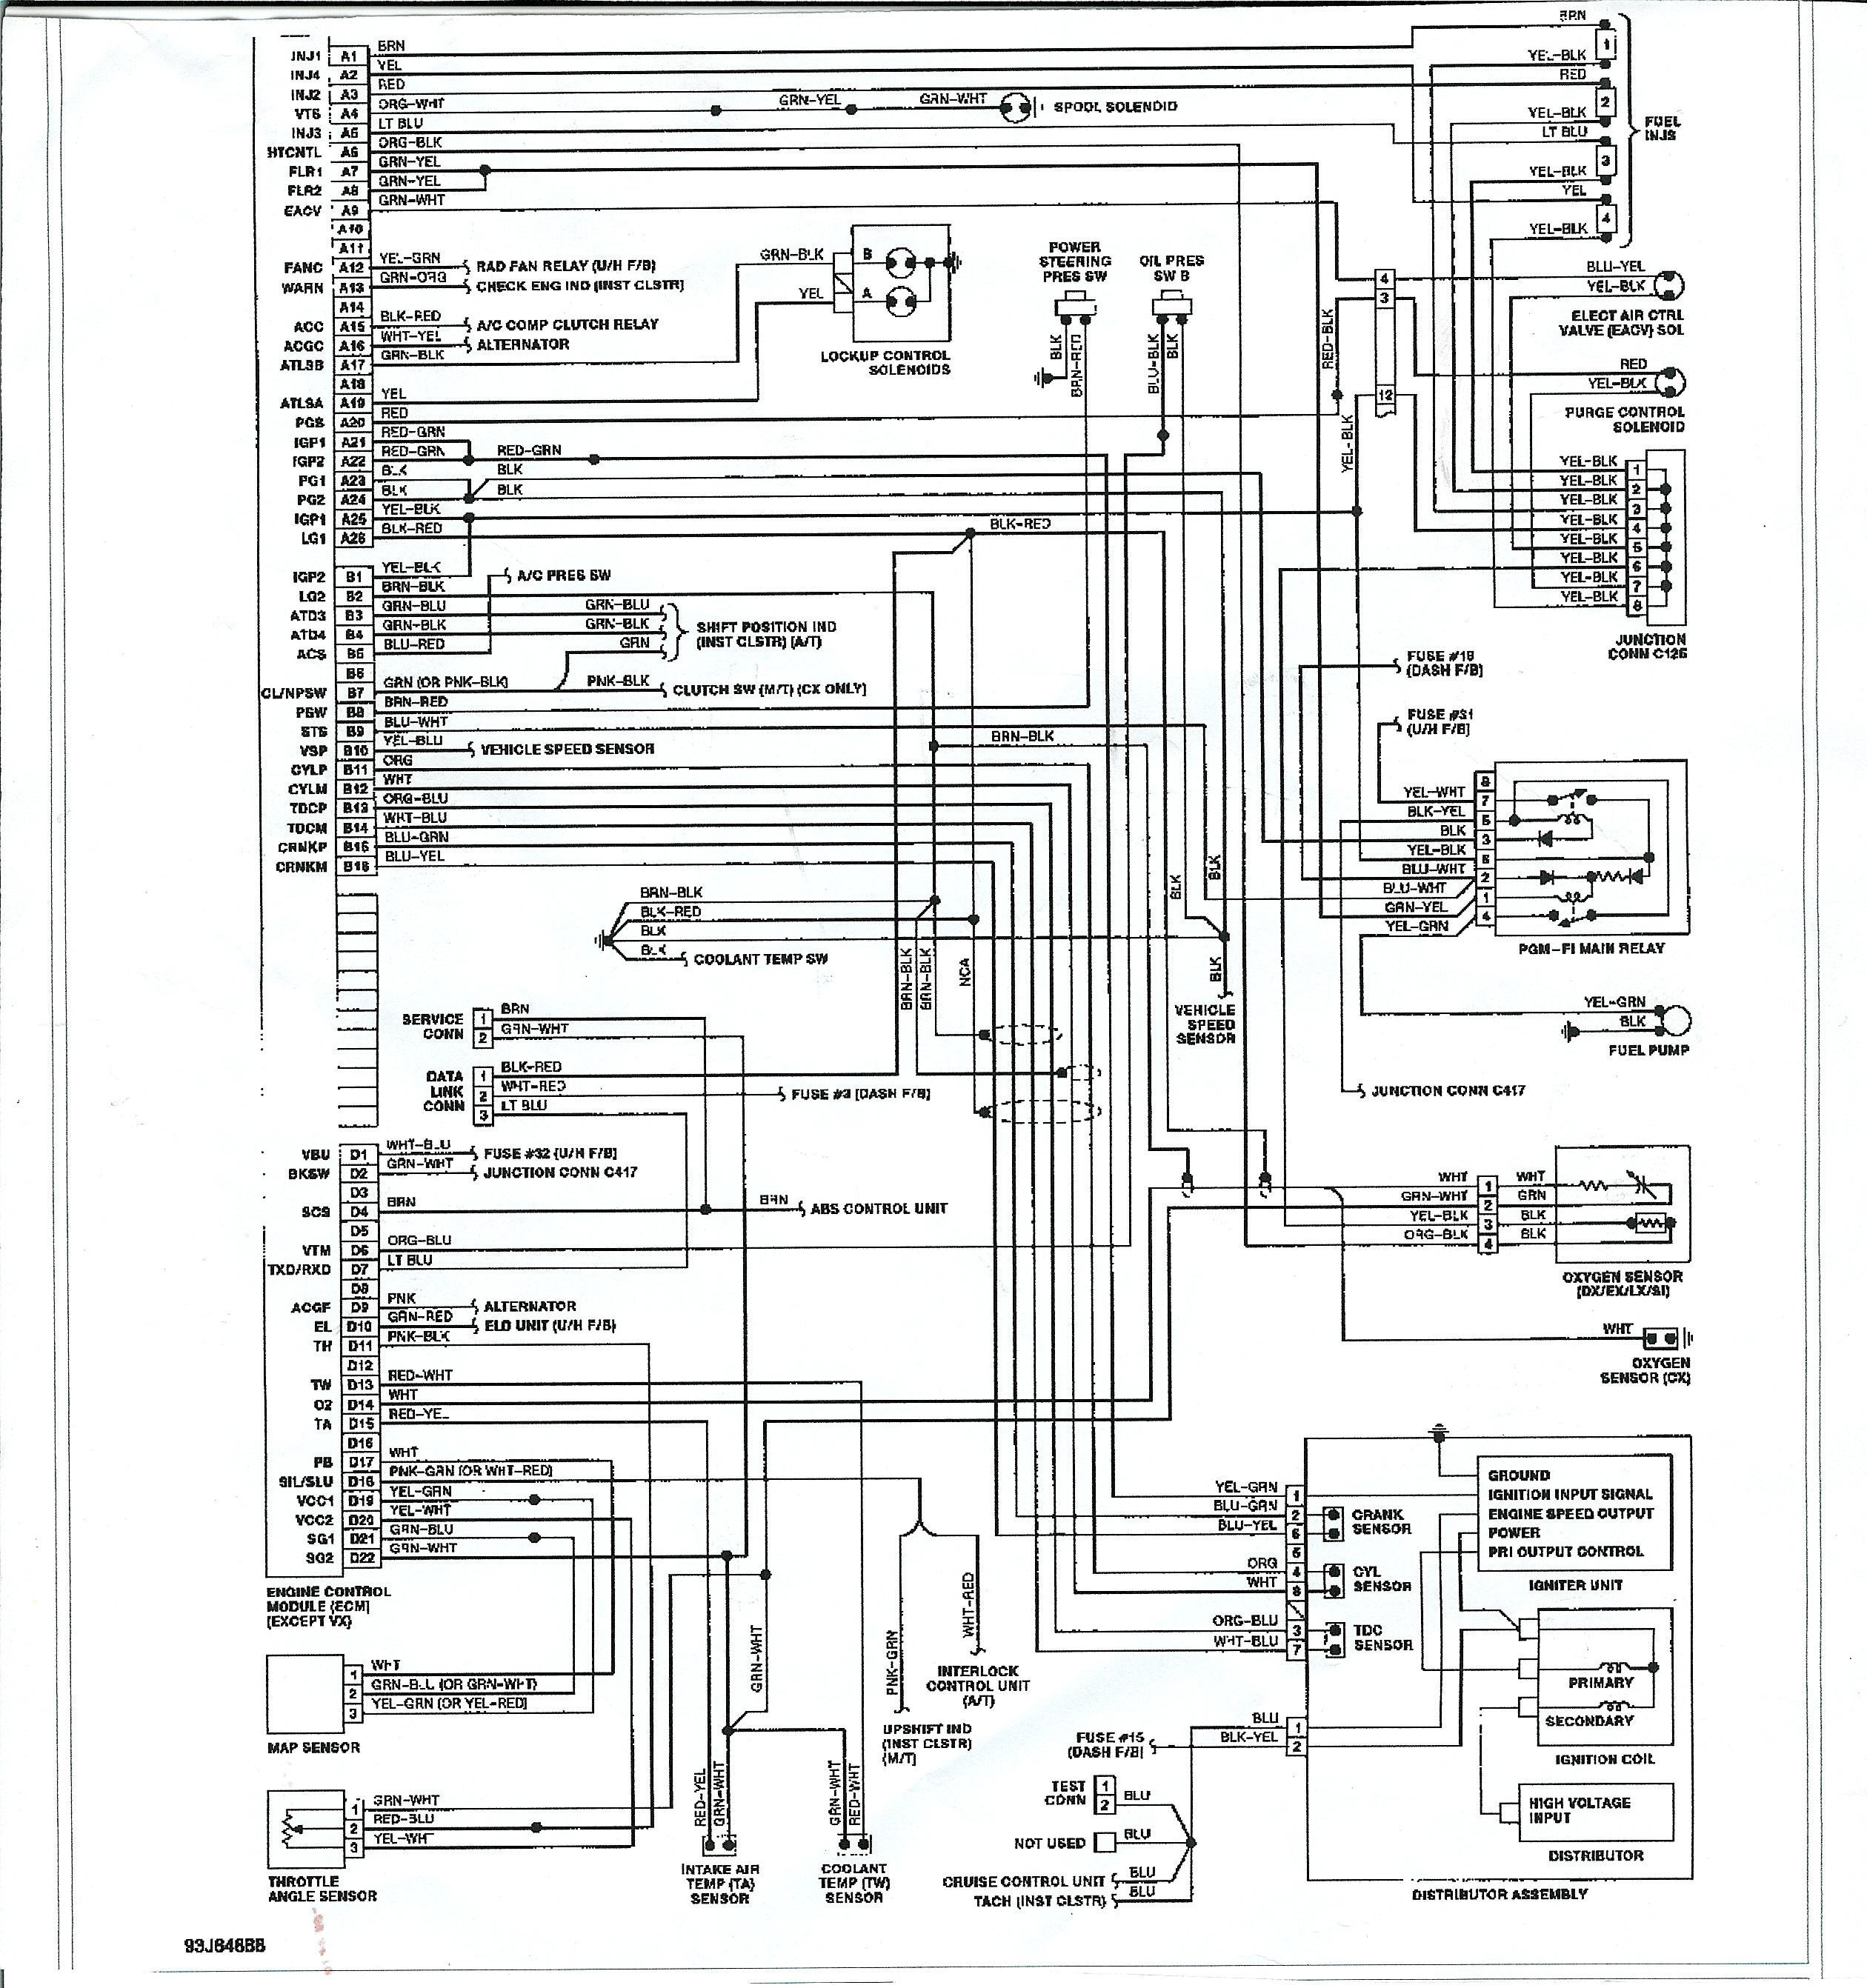 Honda Civic 1998 Engine Diagram 1996 Honda Accord Ignition Wiring Diagram Inspirational Ac Wiring Of Honda Civic 1998 Engine Diagram